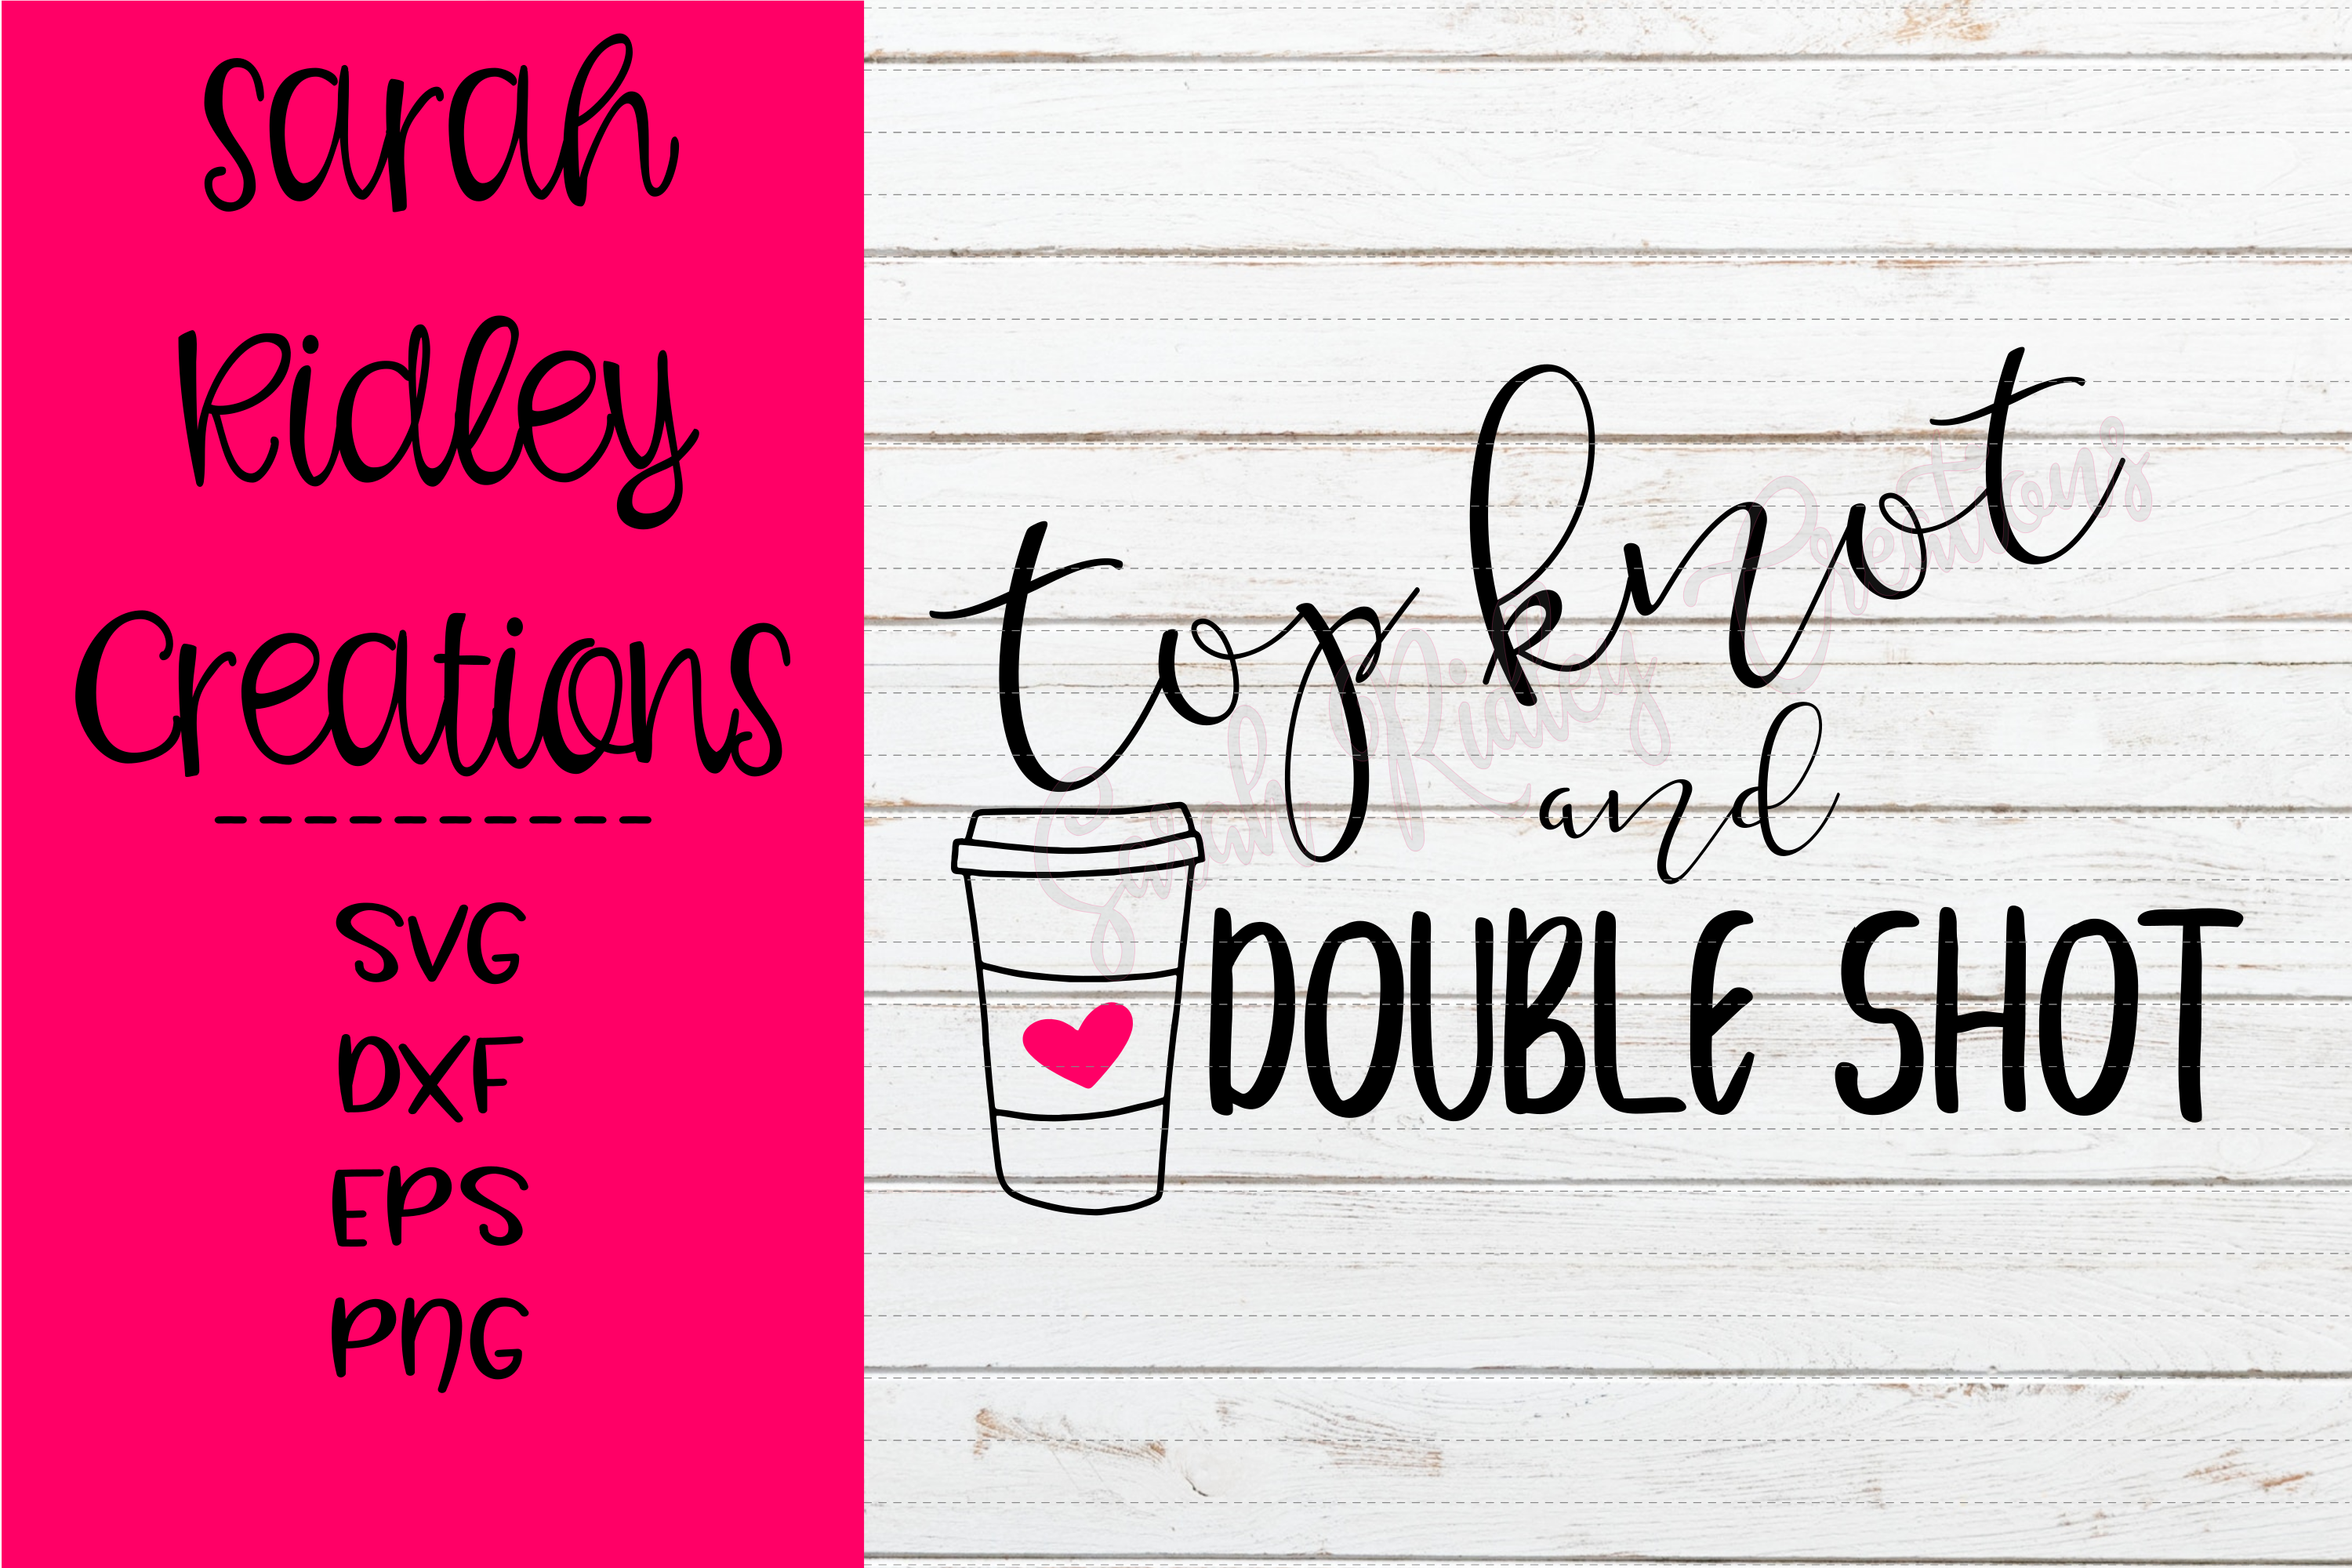 Top Knot And Double Shot 167727 Svgs Design Bundles